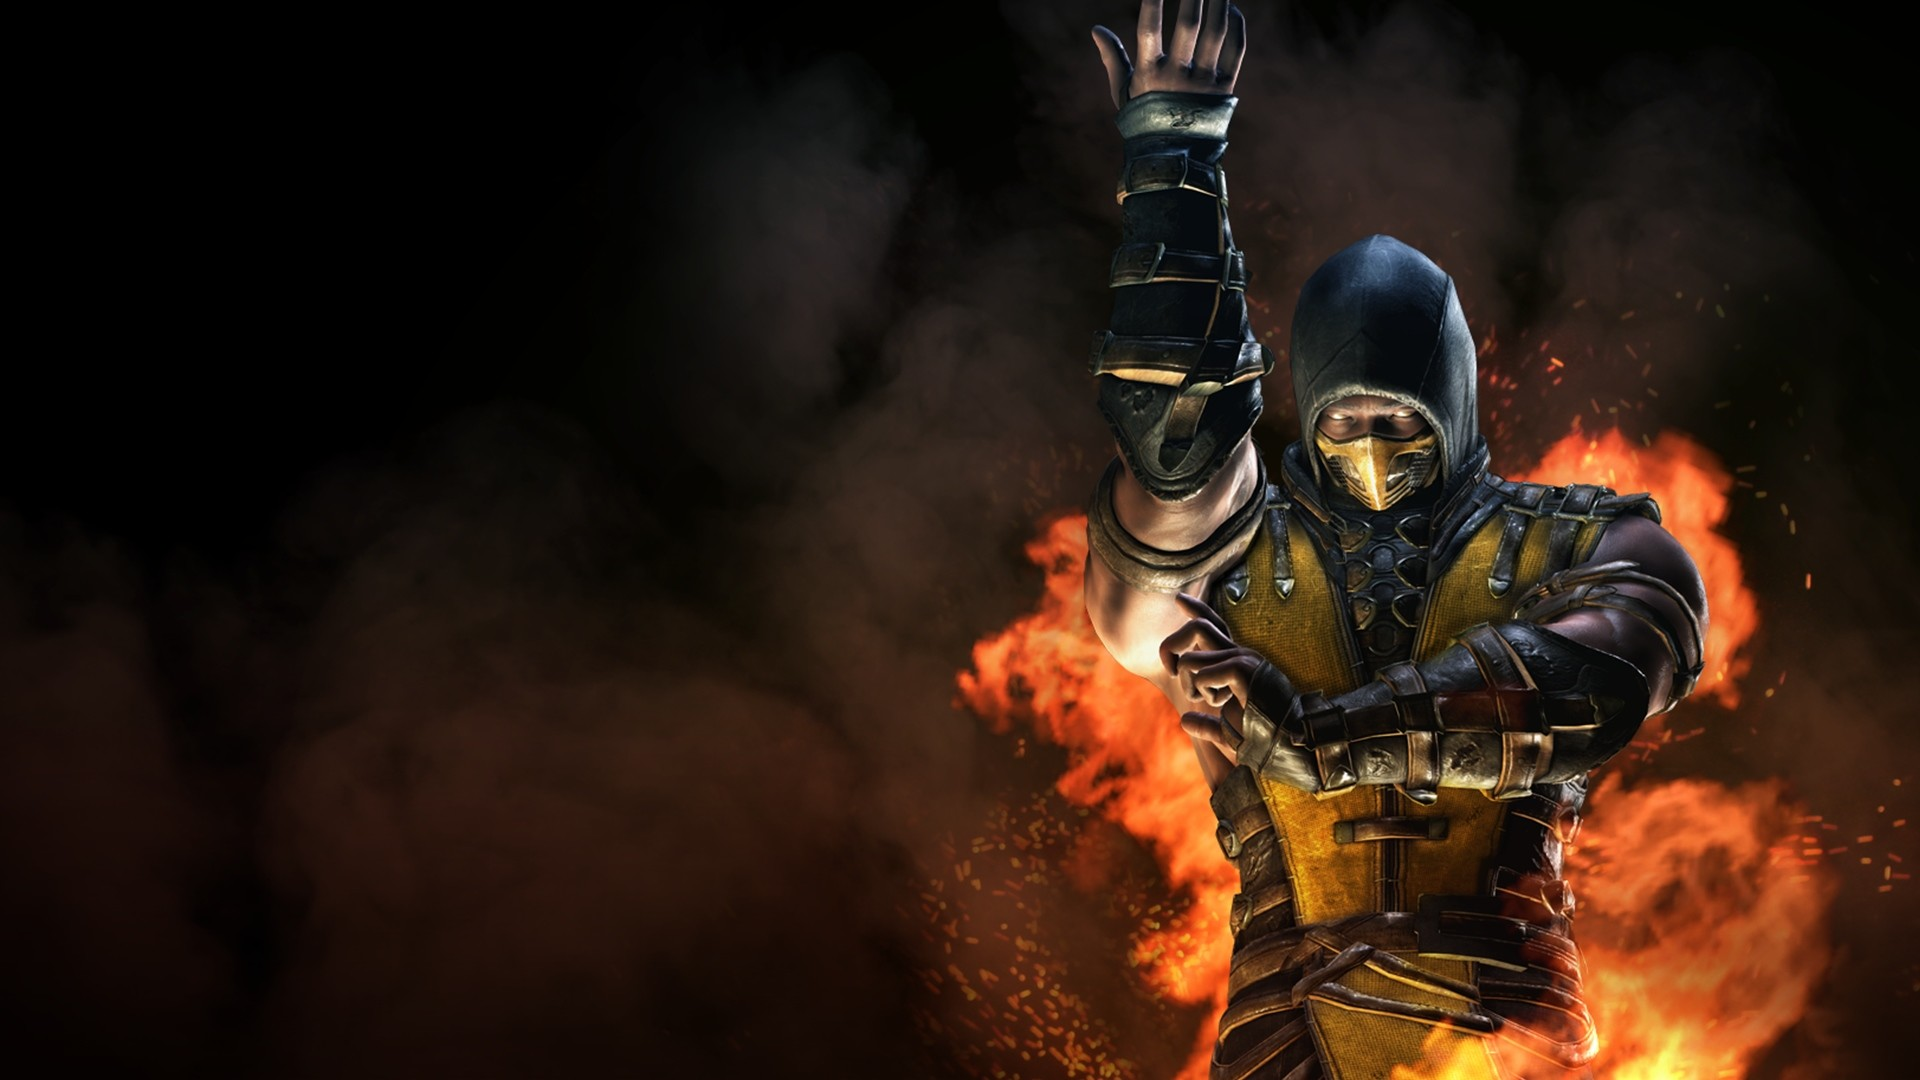 1920x1080 Scorpion Mortal Kombat X Characters Wallpapers HD